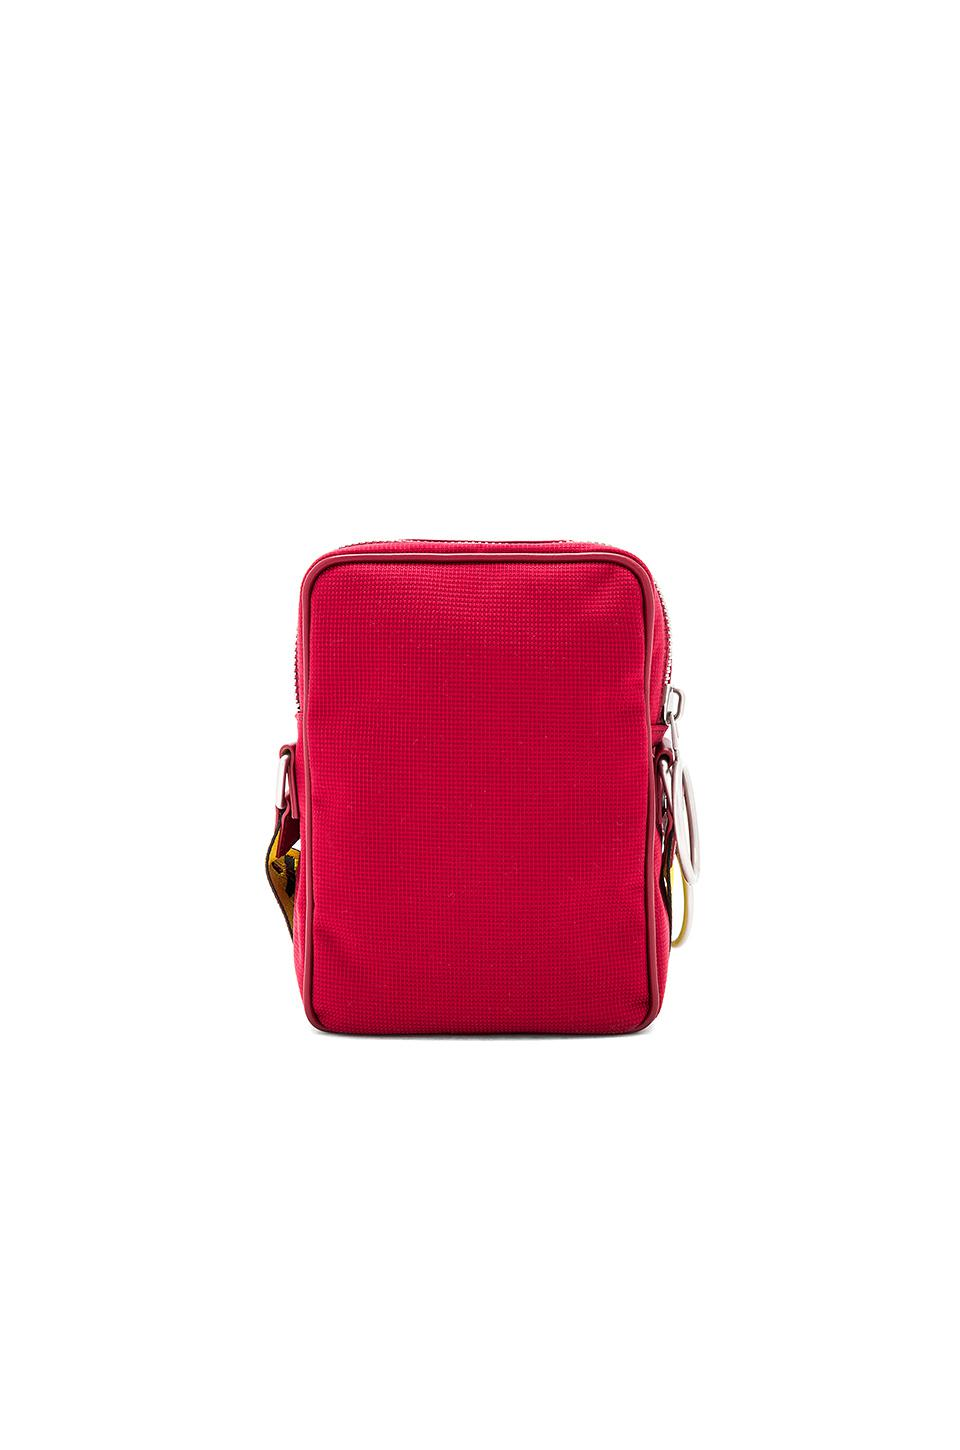 Off-White c/o Virgil Abloh Synthetic Arrows Crossbody in Bordeaux & White (Red)